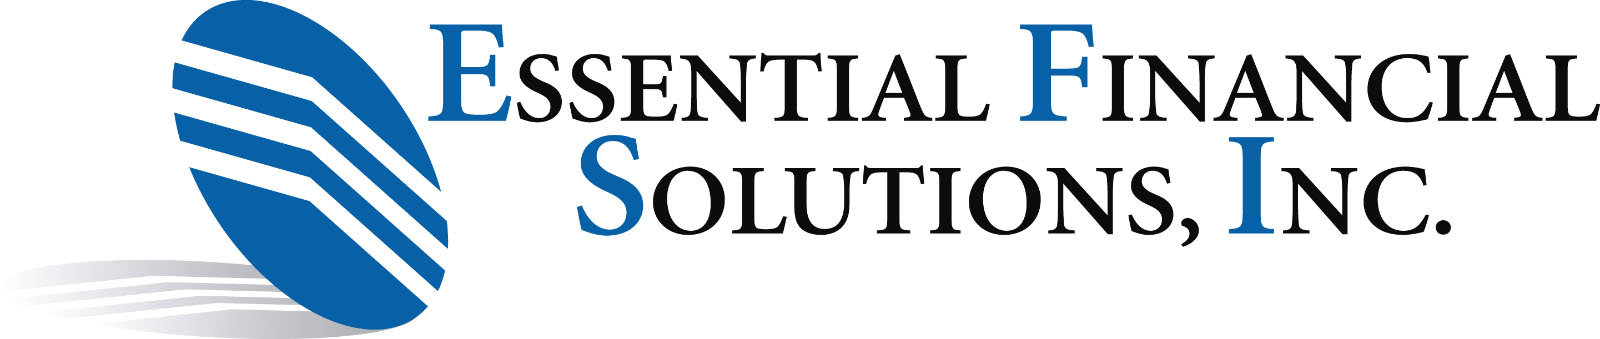 Enterprise Financial Solutions, Inc. logo